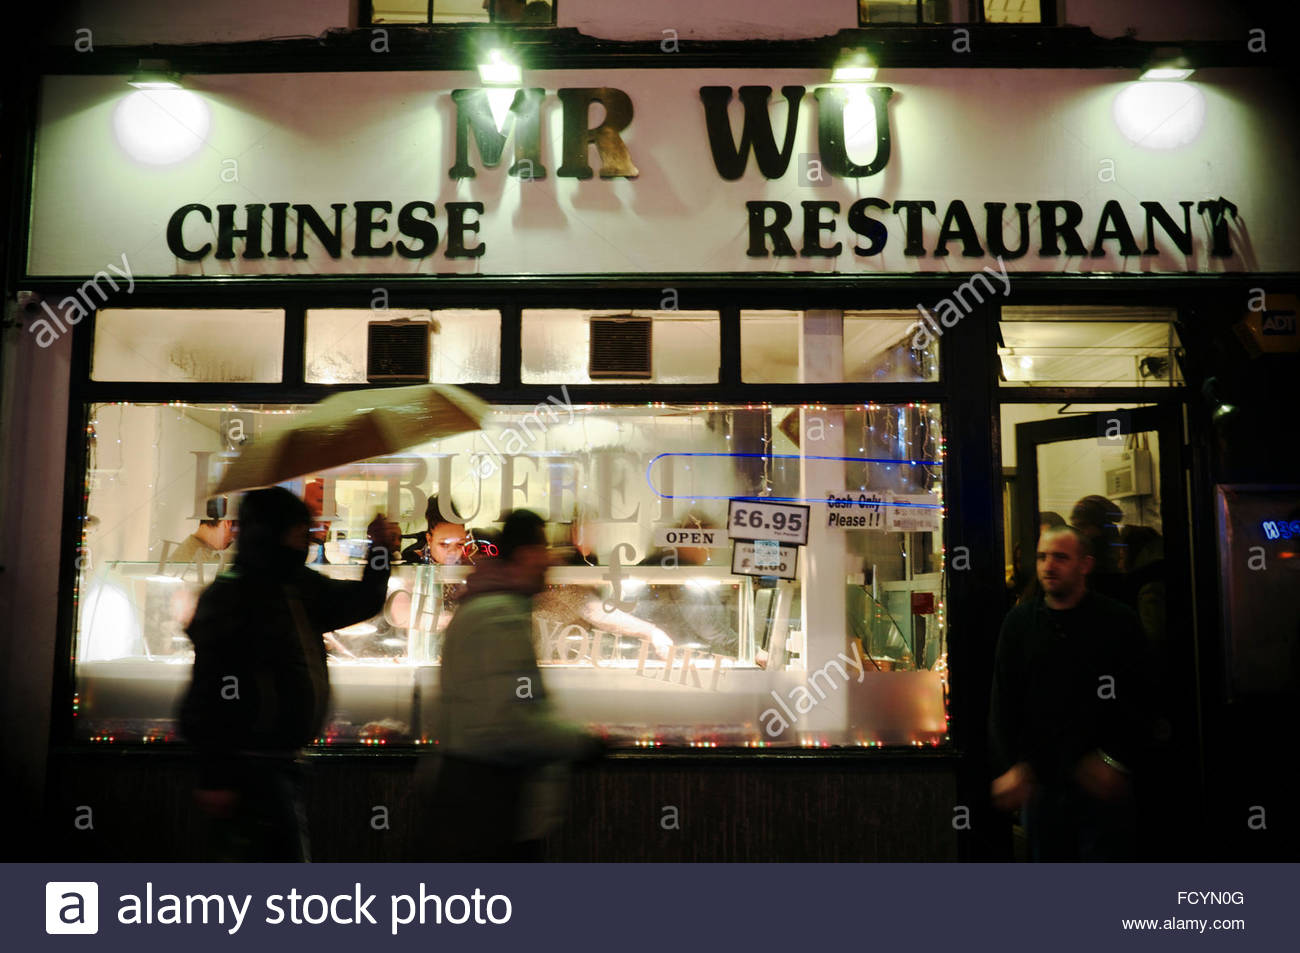 Stunning Chinese Restaurant Exterior Uk Stock Photos  Chinese Restaurant  With Entrancing Mr Wu Chinese Restaurant Exterior In Wardour St Chinatown Area Of With Appealing Garrion Bridges Garden Centre Also London Graphic Center Covent Garden In Addition Arboretum Garden Centre And Wooden Garden Sieve As Well As Bike Shop Covent Garden Additionally Dragonfly Garden Decor From Alamycom With   Entrancing Chinese Restaurant Exterior Uk Stock Photos  Chinese Restaurant  With Appealing Mr Wu Chinese Restaurant Exterior In Wardour St Chinatown Area Of And Stunning Garrion Bridges Garden Centre Also London Graphic Center Covent Garden In Addition Arboretum Garden Centre From Alamycom